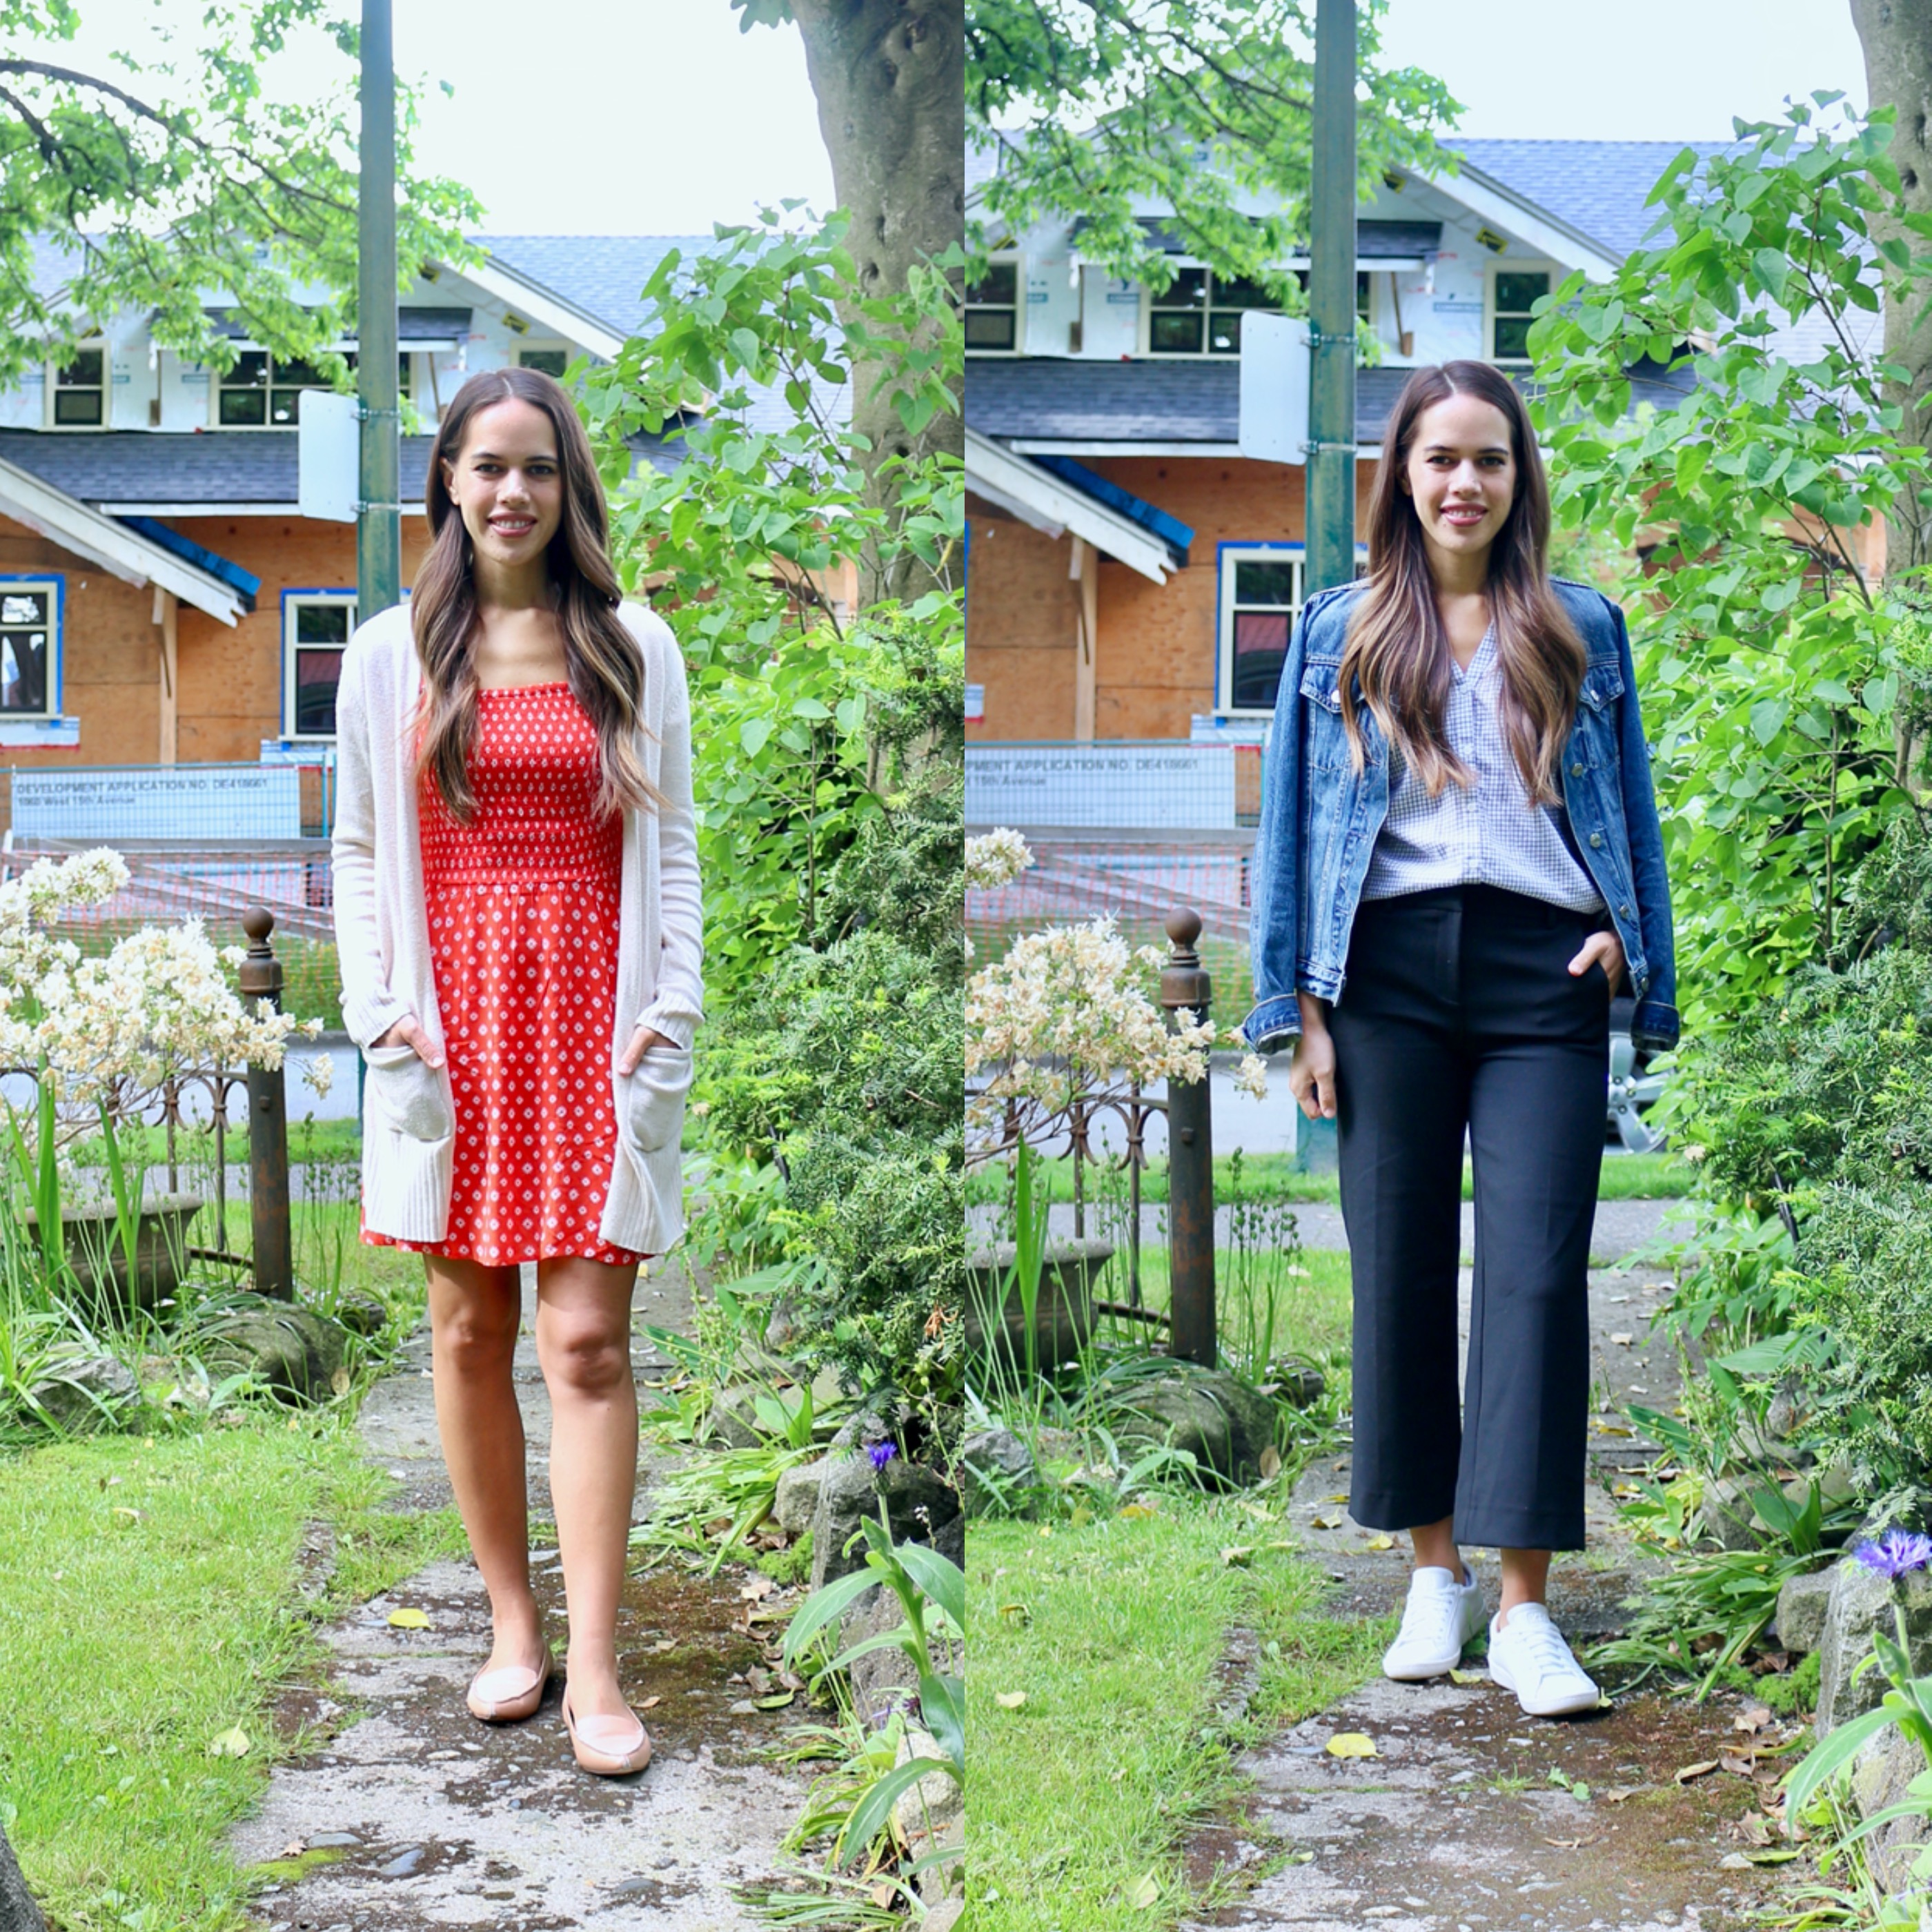 Jules in Flats - May Outfits Week 4 (Easy Work from Home Outfits)